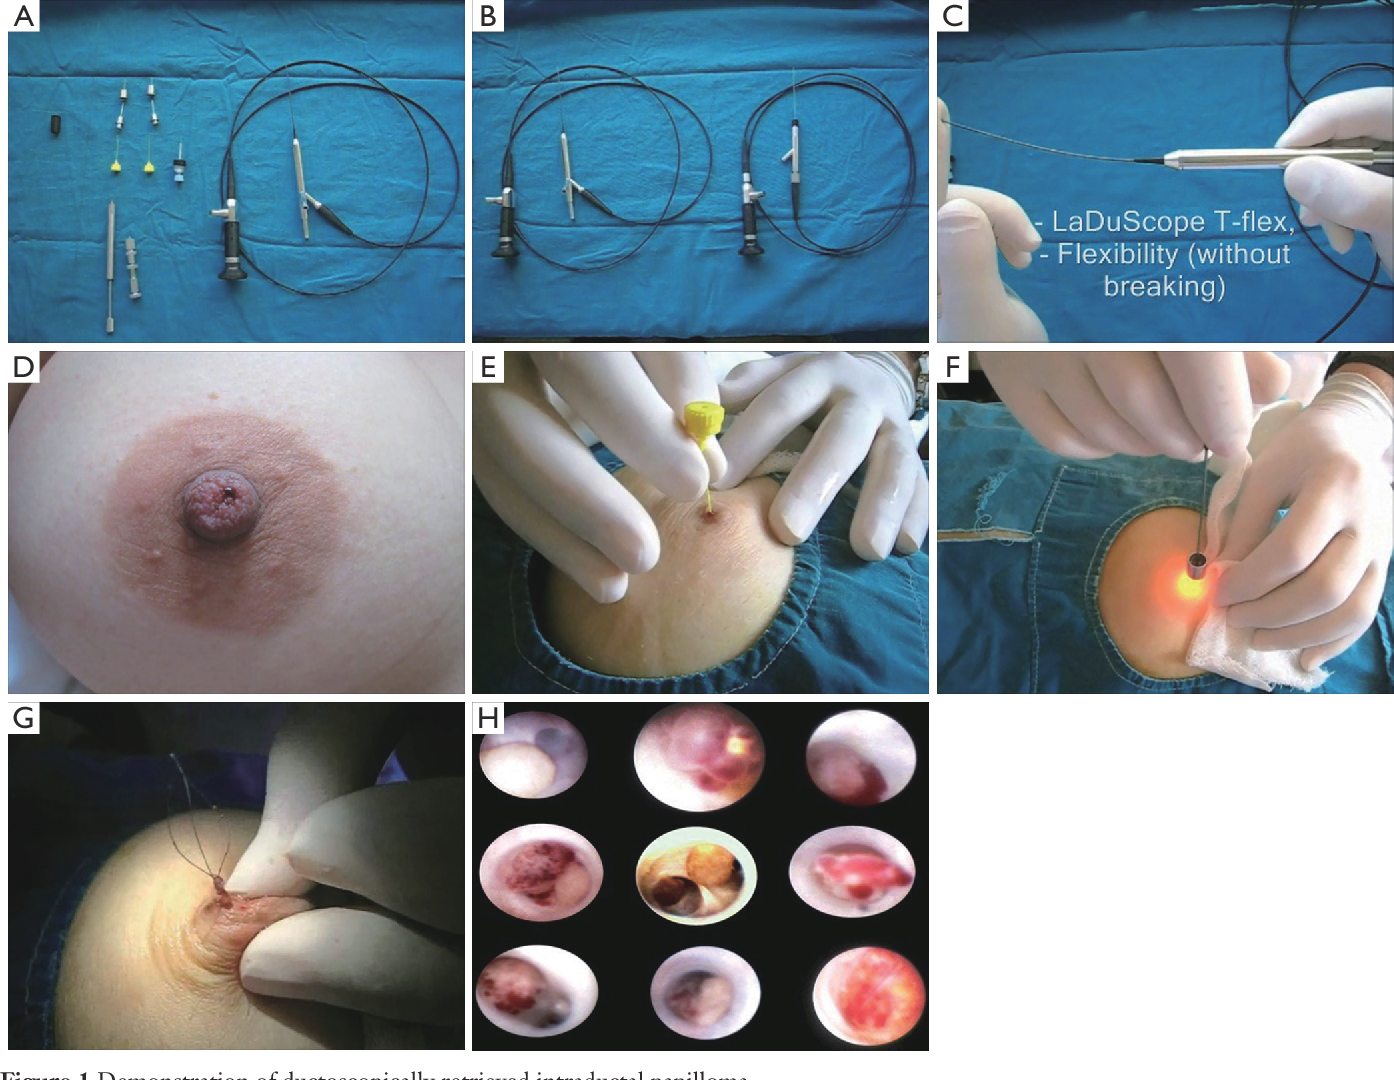 is intraductal papilloma caused by hpv)